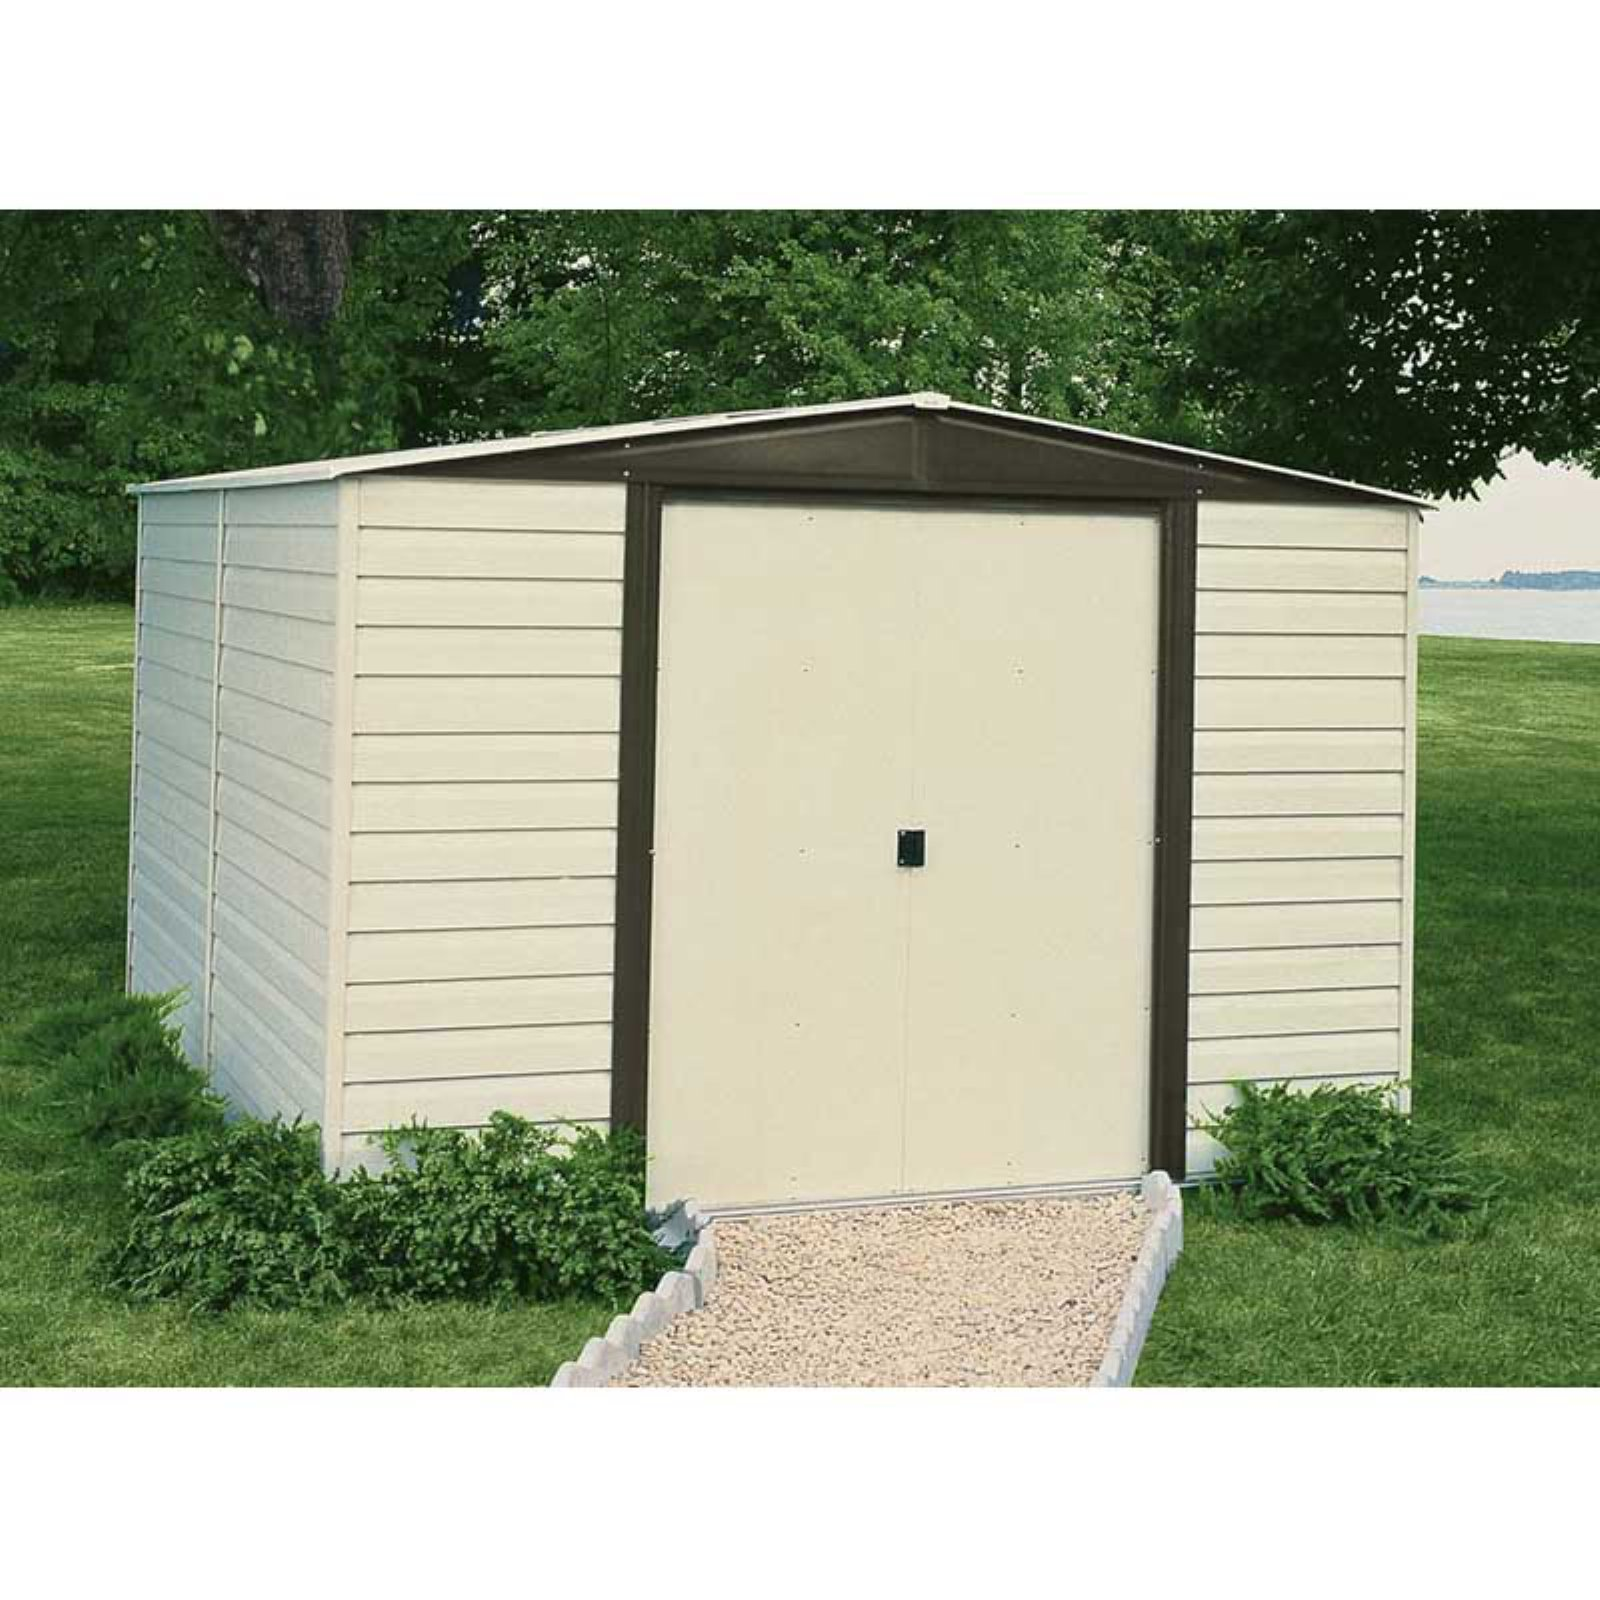 Vinyl Dallas 10 x 12 ft. Steel Storage Shed Coffee/Almond